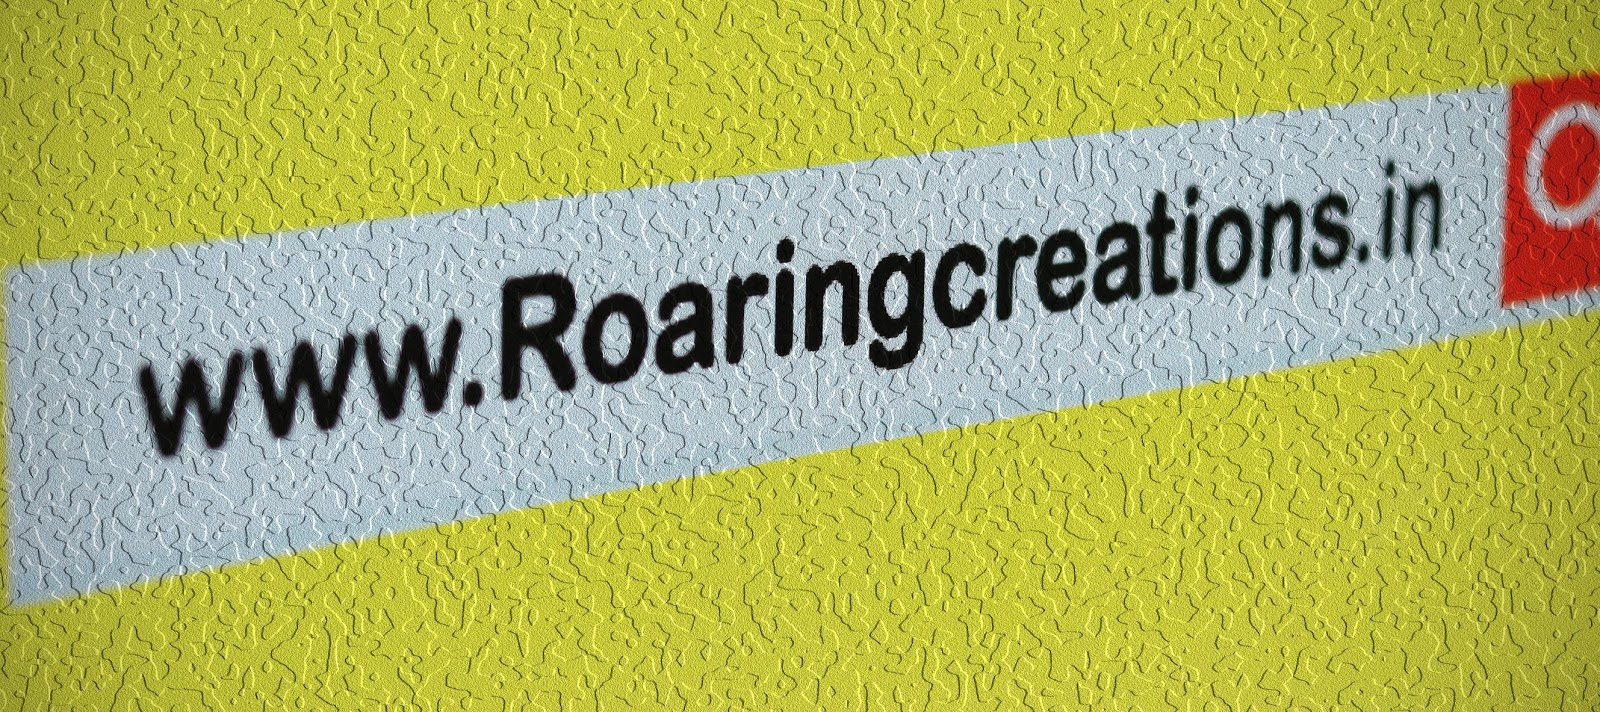 Roaring Creations, Roaring creations Private Limited, Roaring Creations films, Roaring Creations Company,